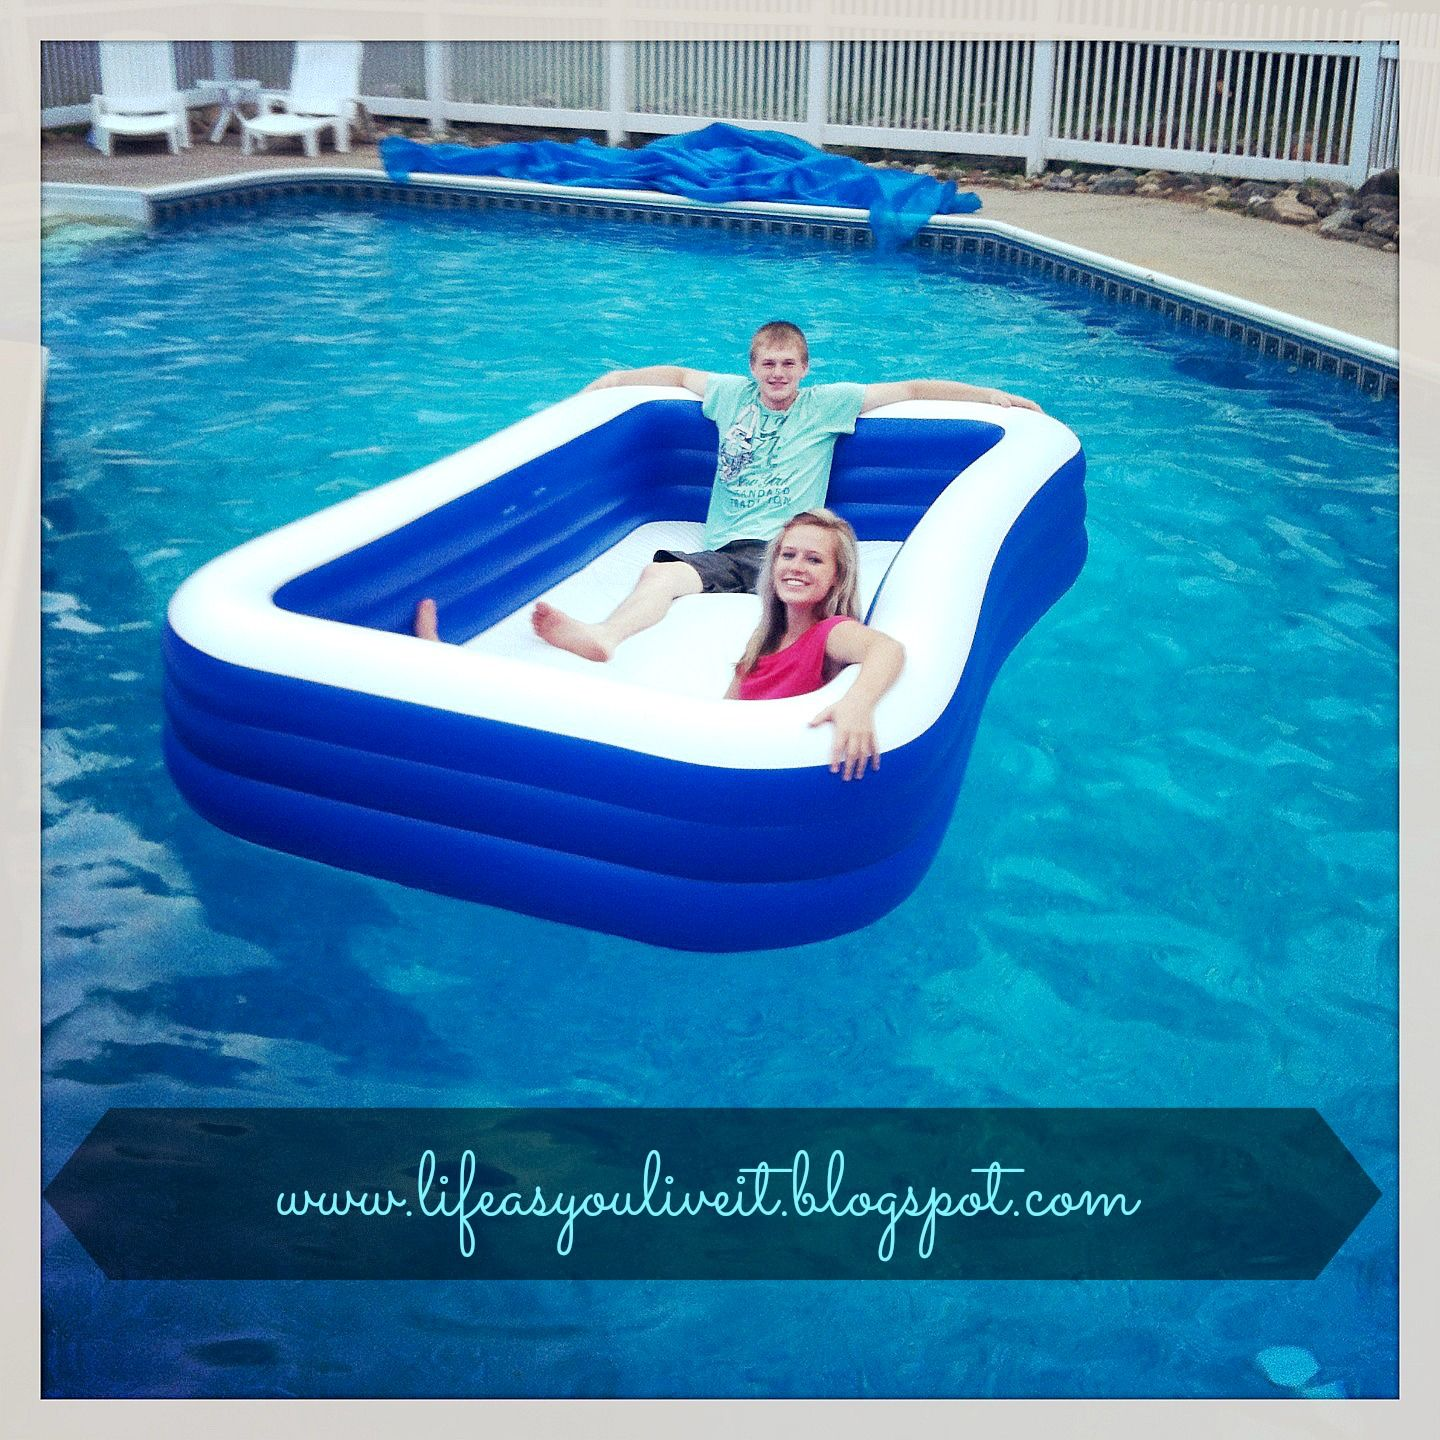 Inside Pool a blow up pool inside of a pool | awesome ideas | pinterest